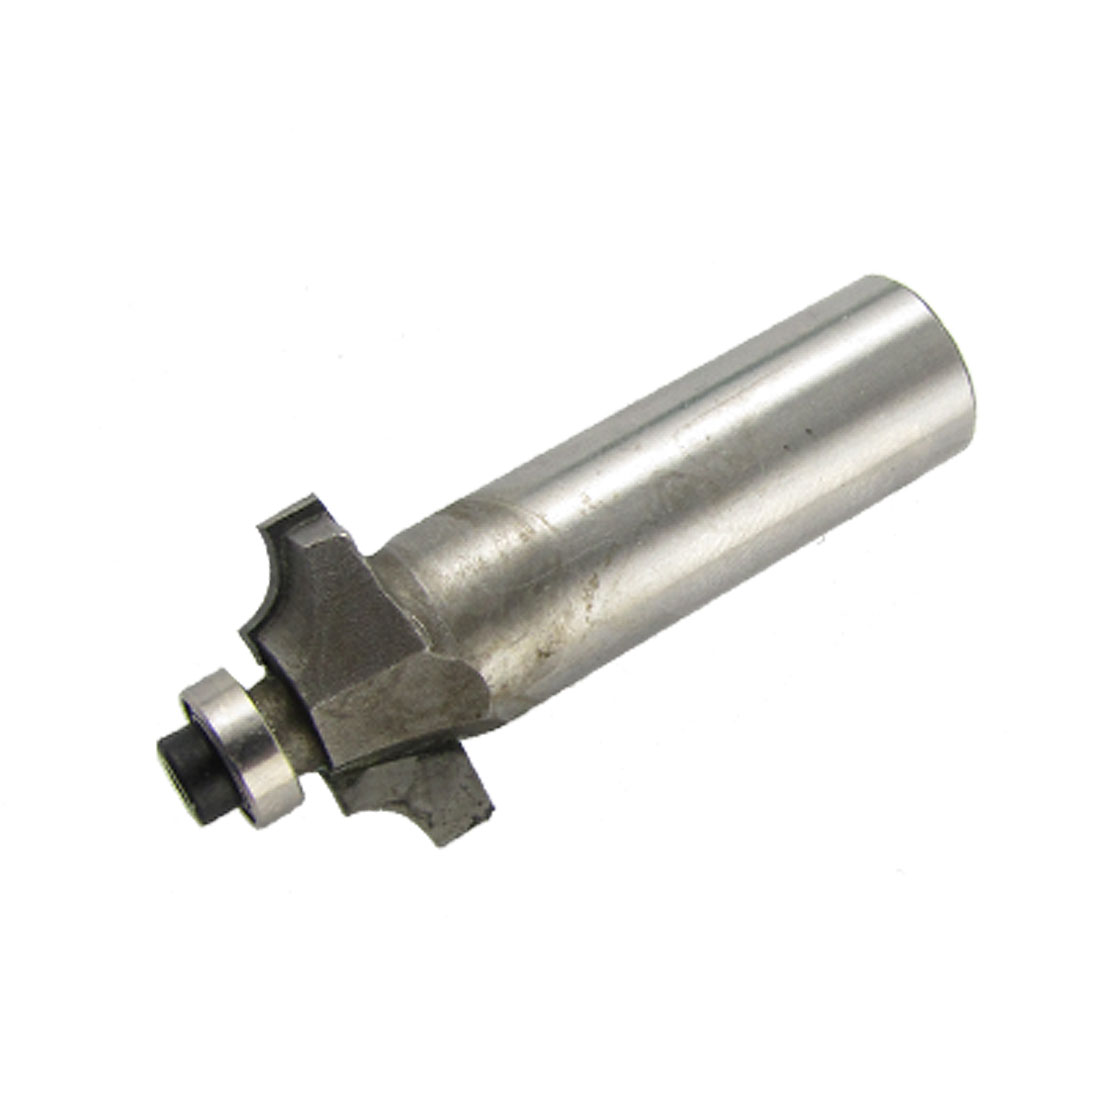 "0.5"" Dia. Straight Shank Woodworking Beading Router Bit"